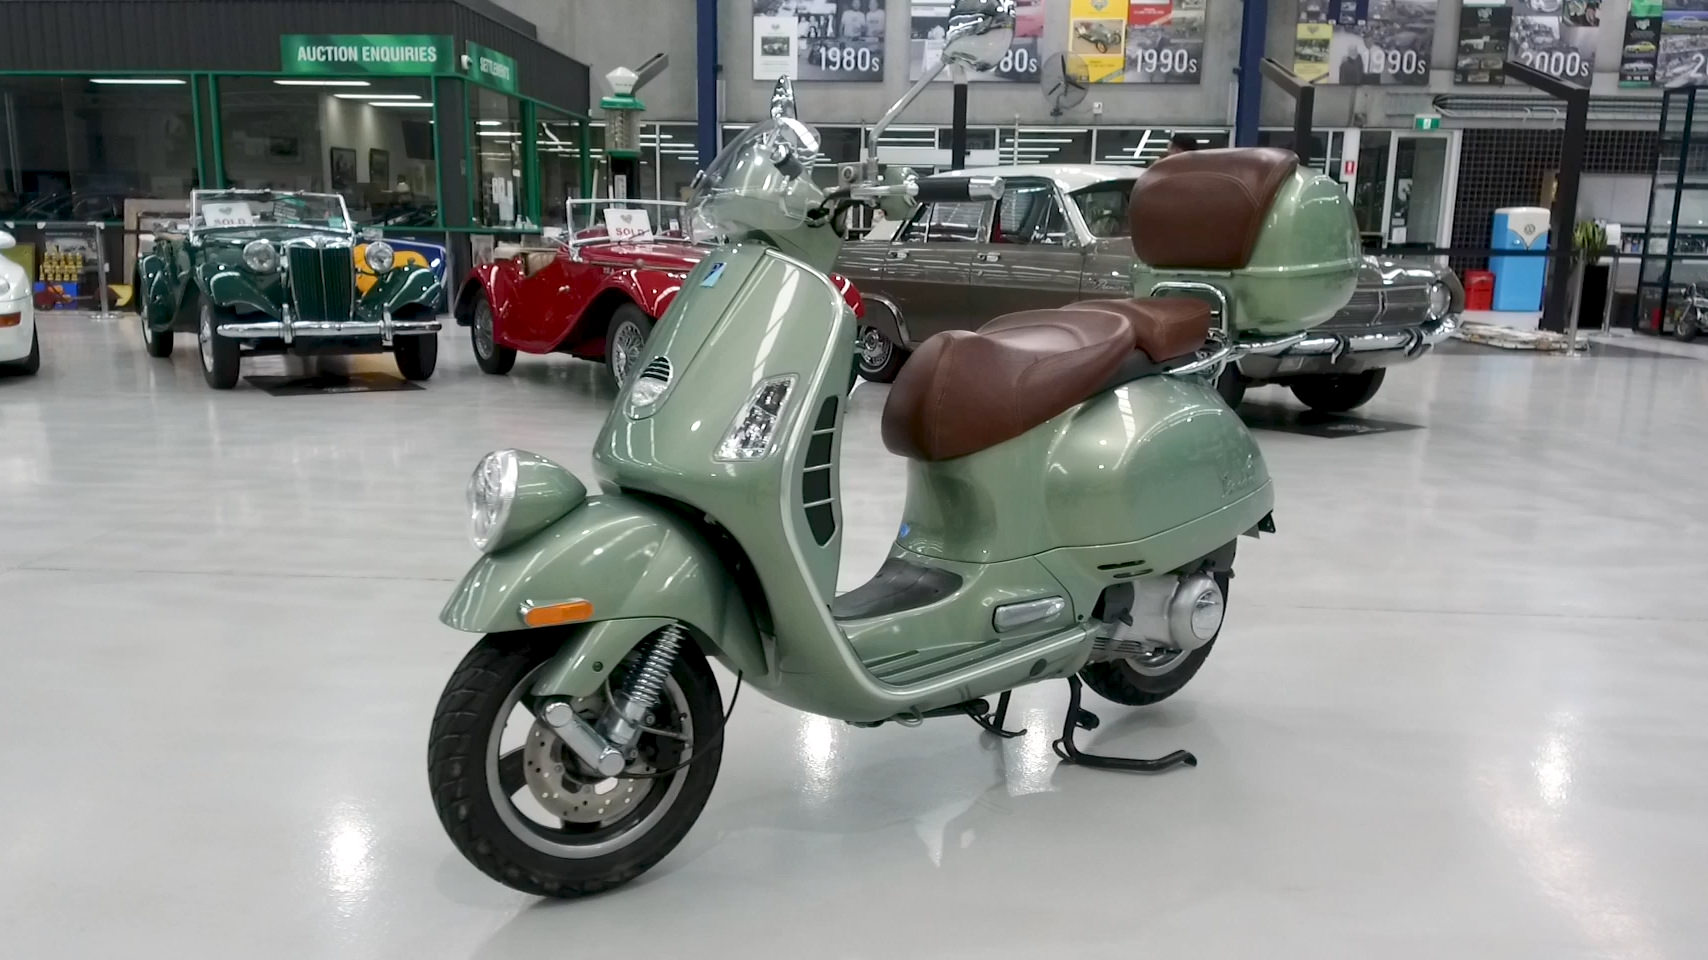 2009 Vespa Piaggio 250 GTV ie Motorcycle - 2021 Shannons Winter Timed Online Auction